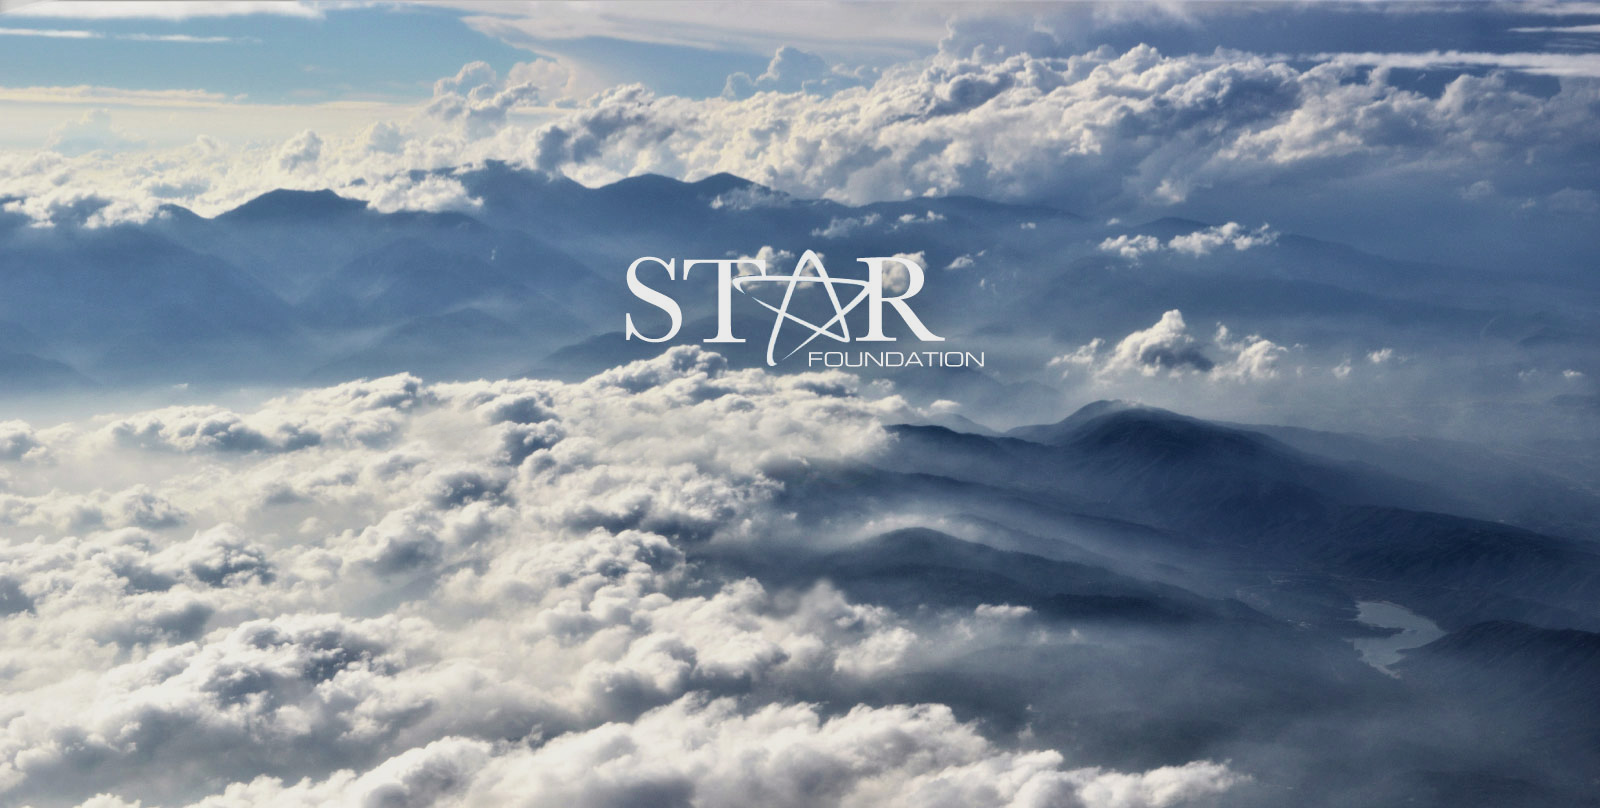 Star Retreats - starfound.org